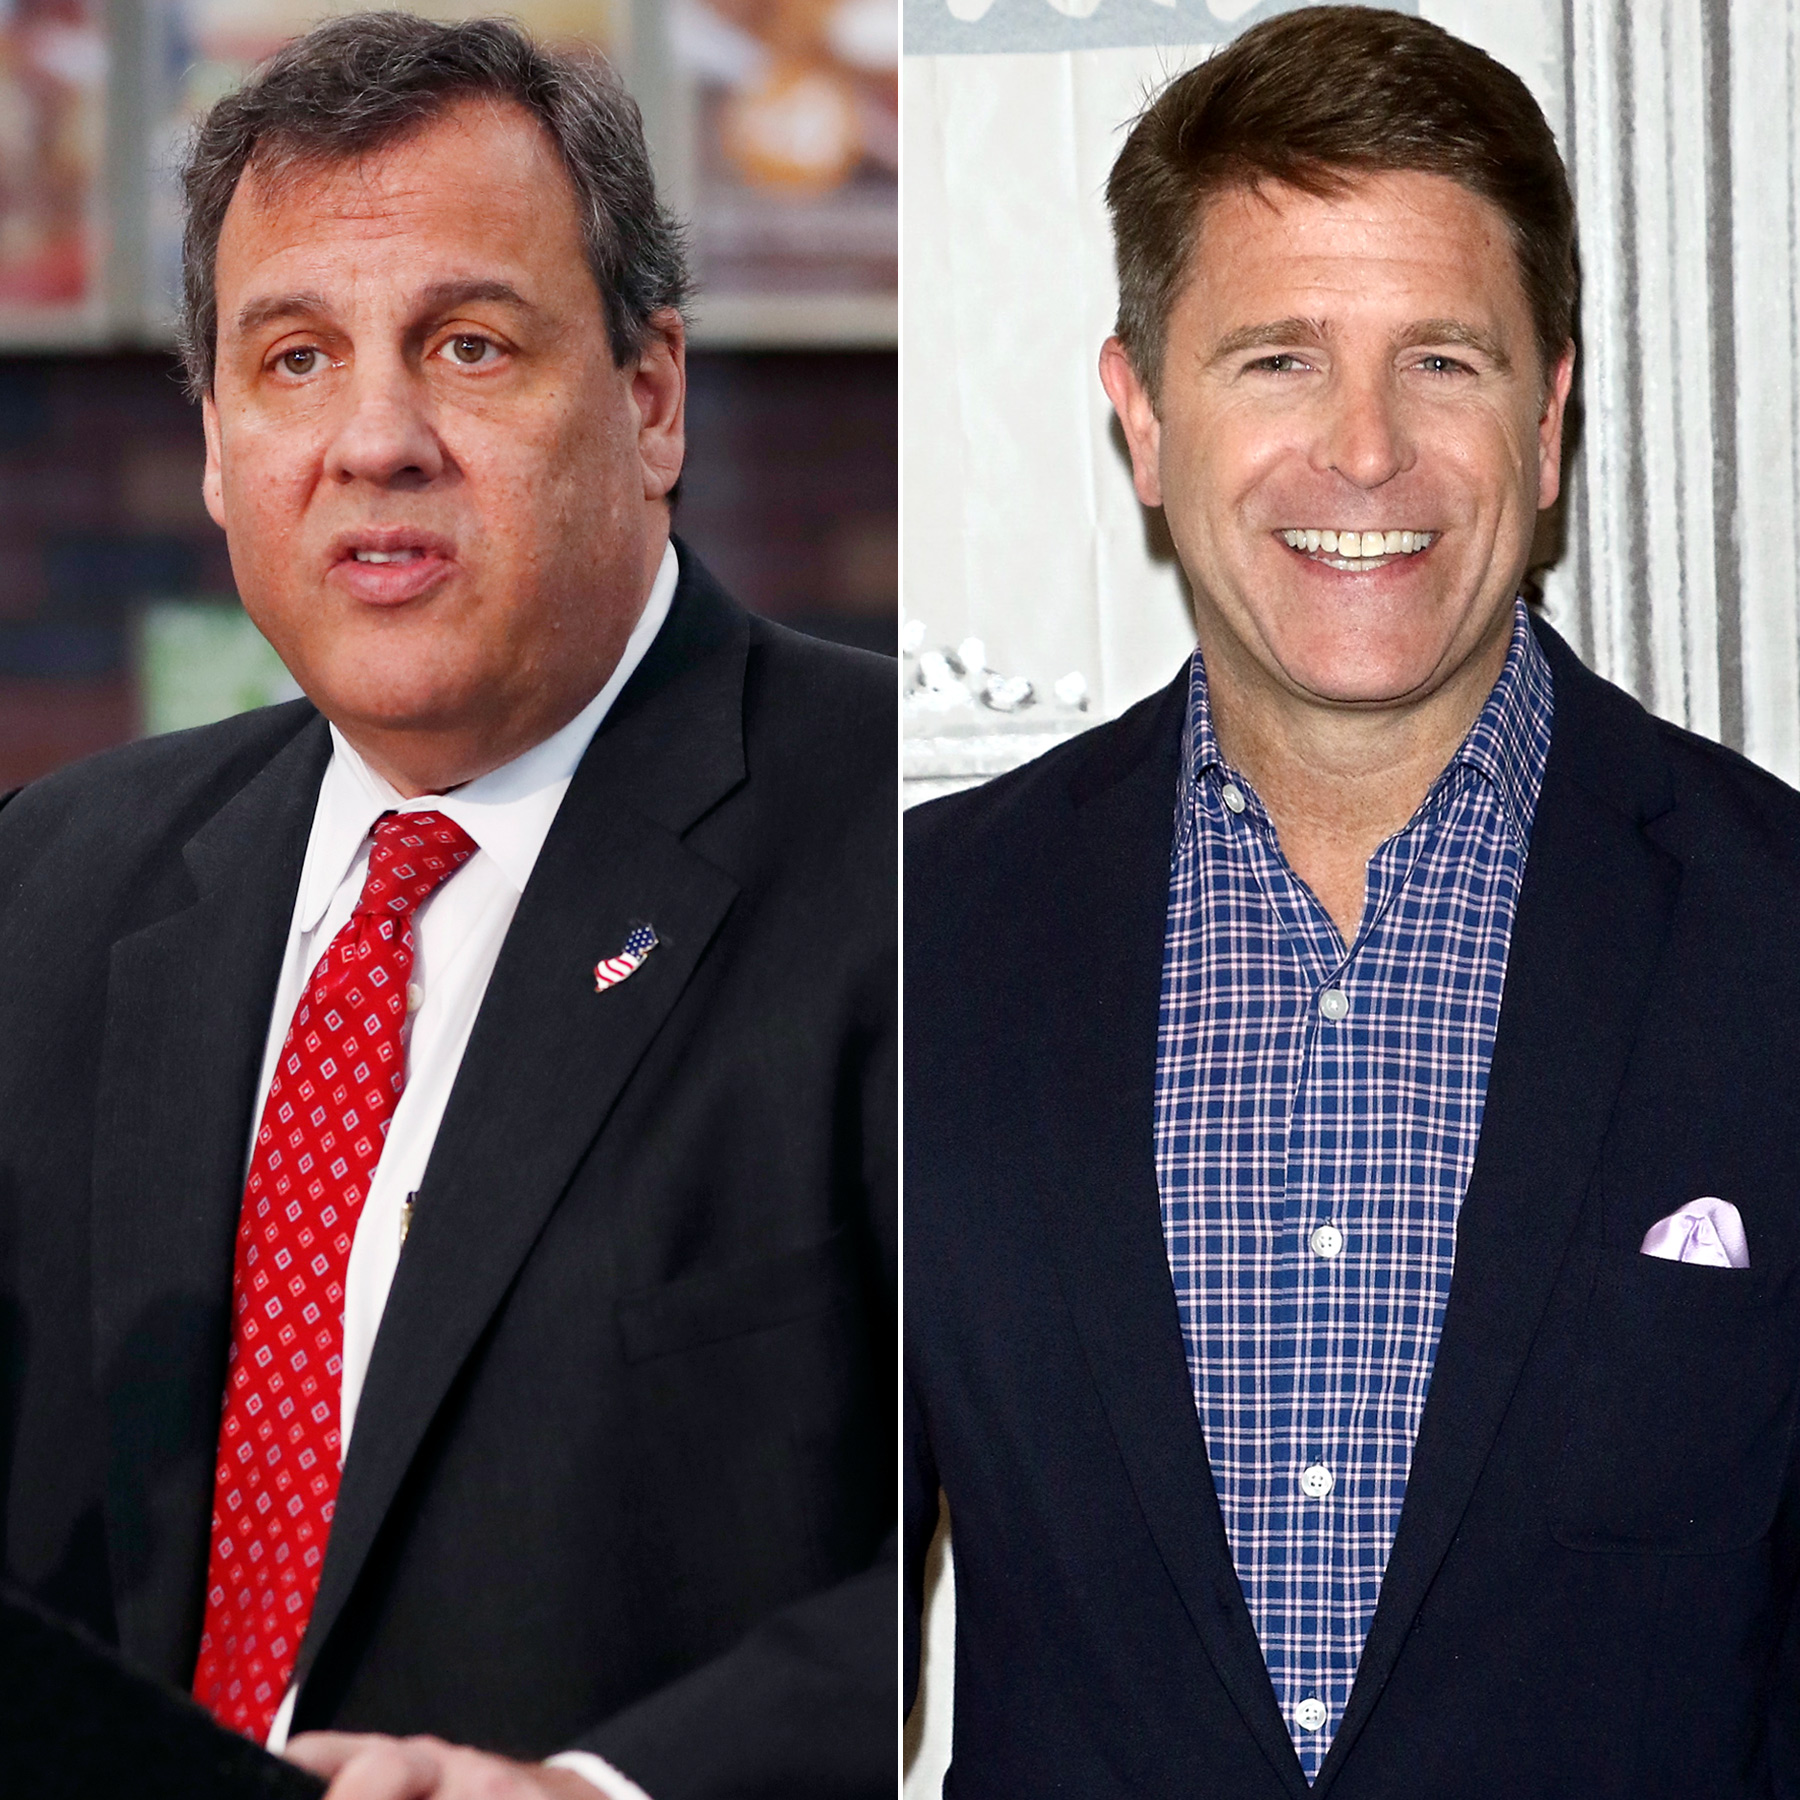 Chris Christie and Brad Thor (split)